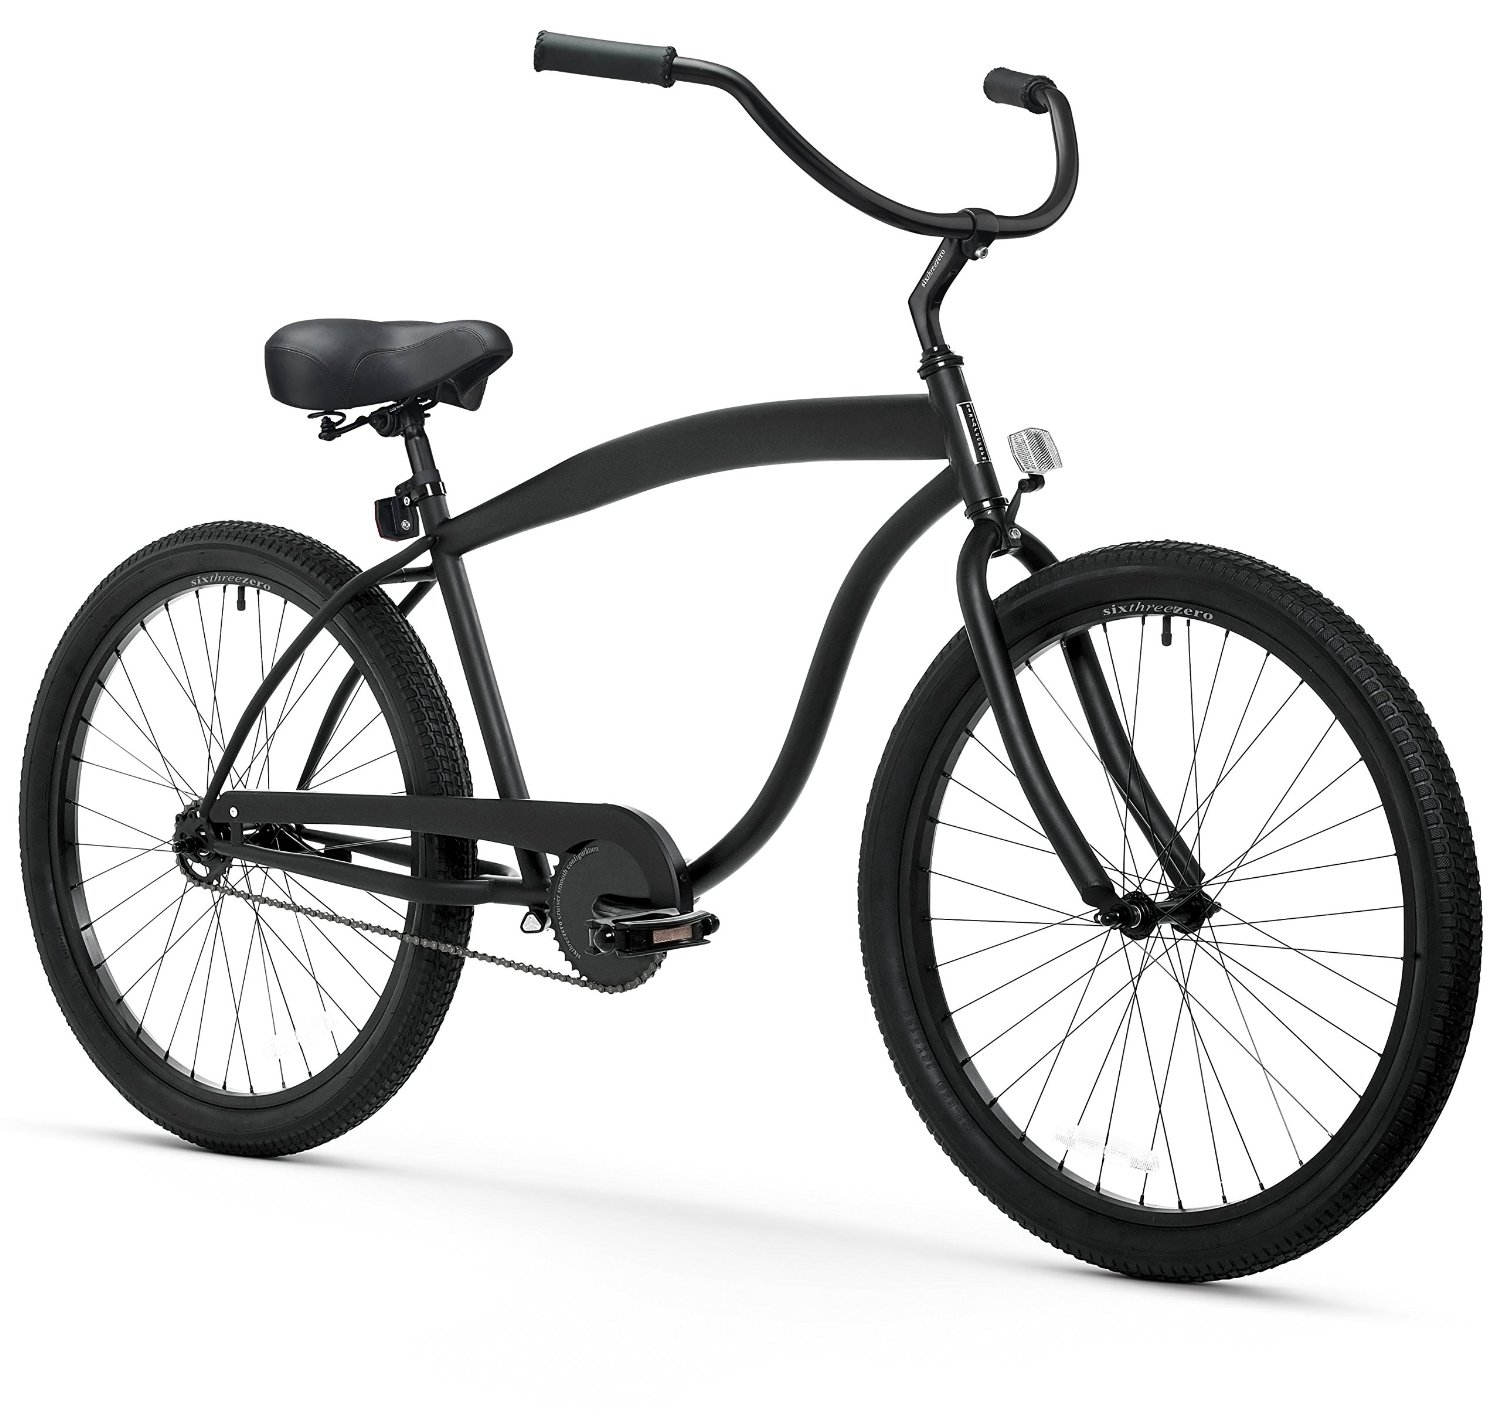 "sixthreezero Men's In The Barrel Beach Cruiser Bike – Comfort Bubble Saddle and 26"" Wheels"